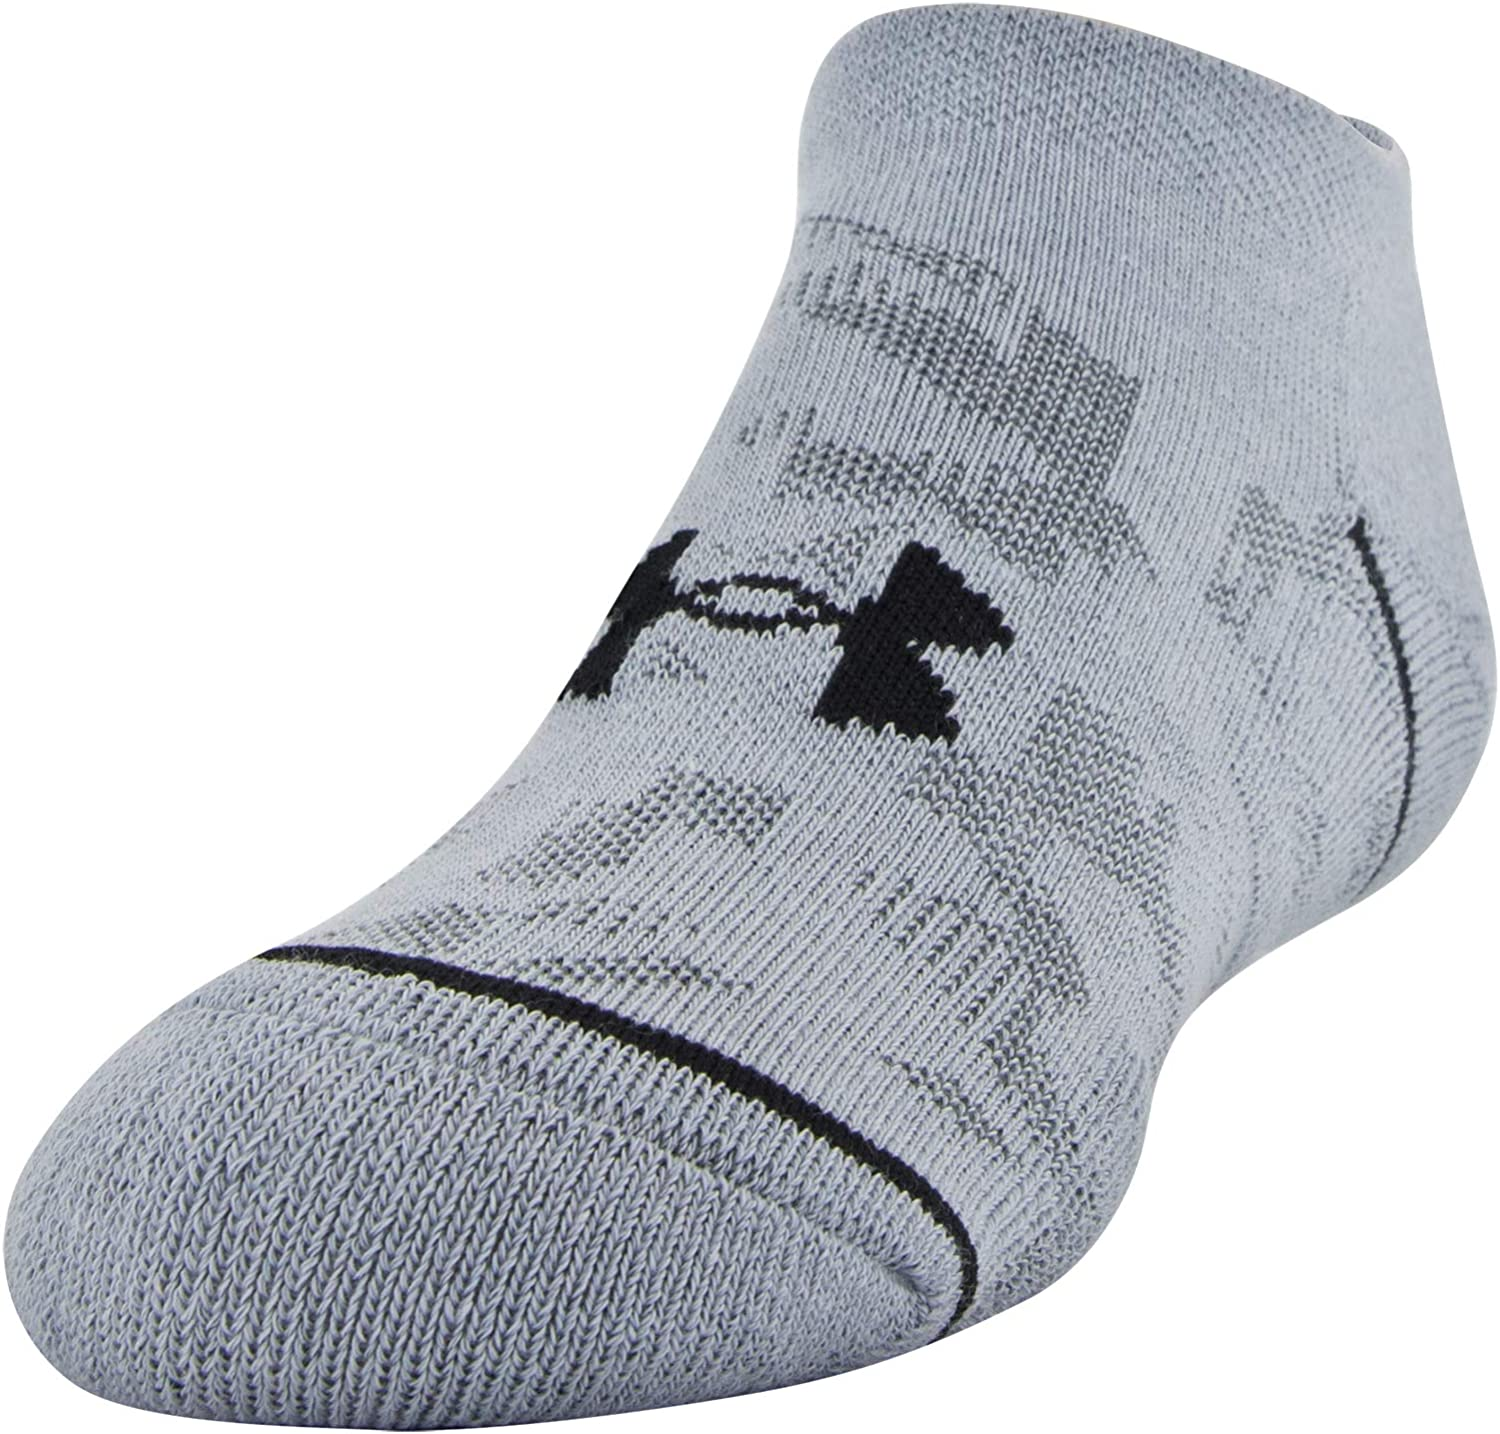 Under Armour Youth Phenom No Show Socks, 3-Pairs, Heather Blue Assorted, Shoe Size: Youth 13.5K-4Y: Clothing